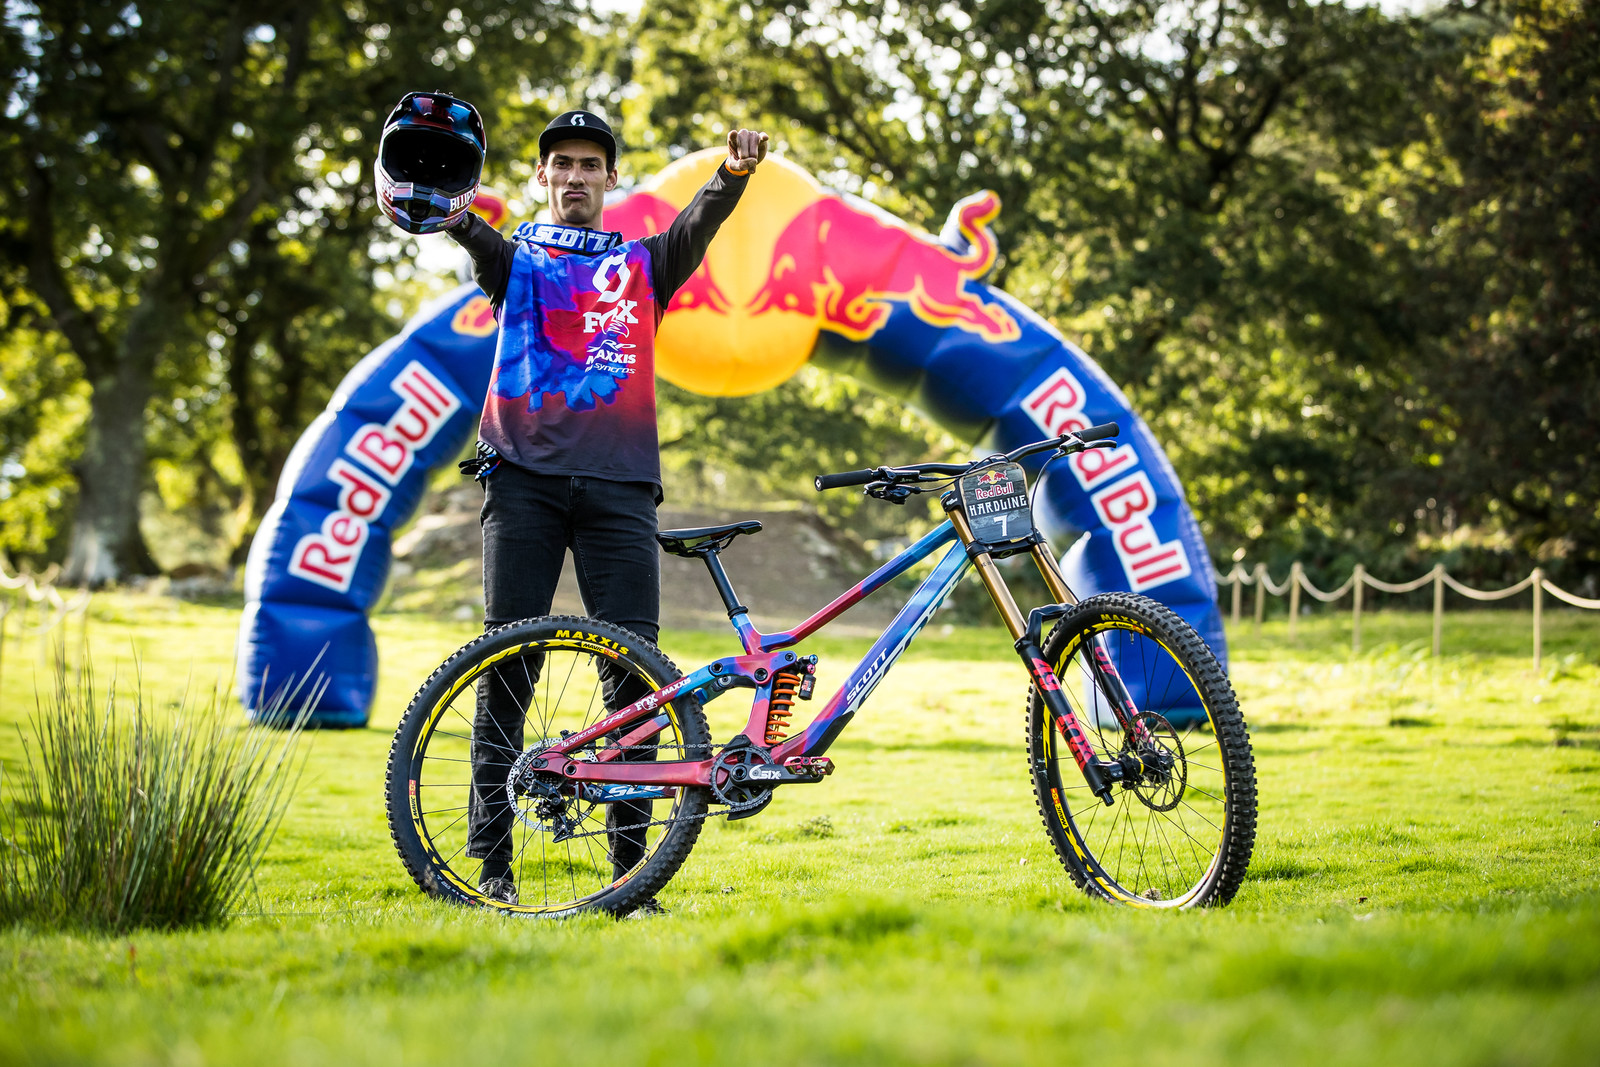 Florent Payet with his Scott Gambler - The Bikes of Red Bull Hardline - Mountain Biking Pictures - Vital MTB